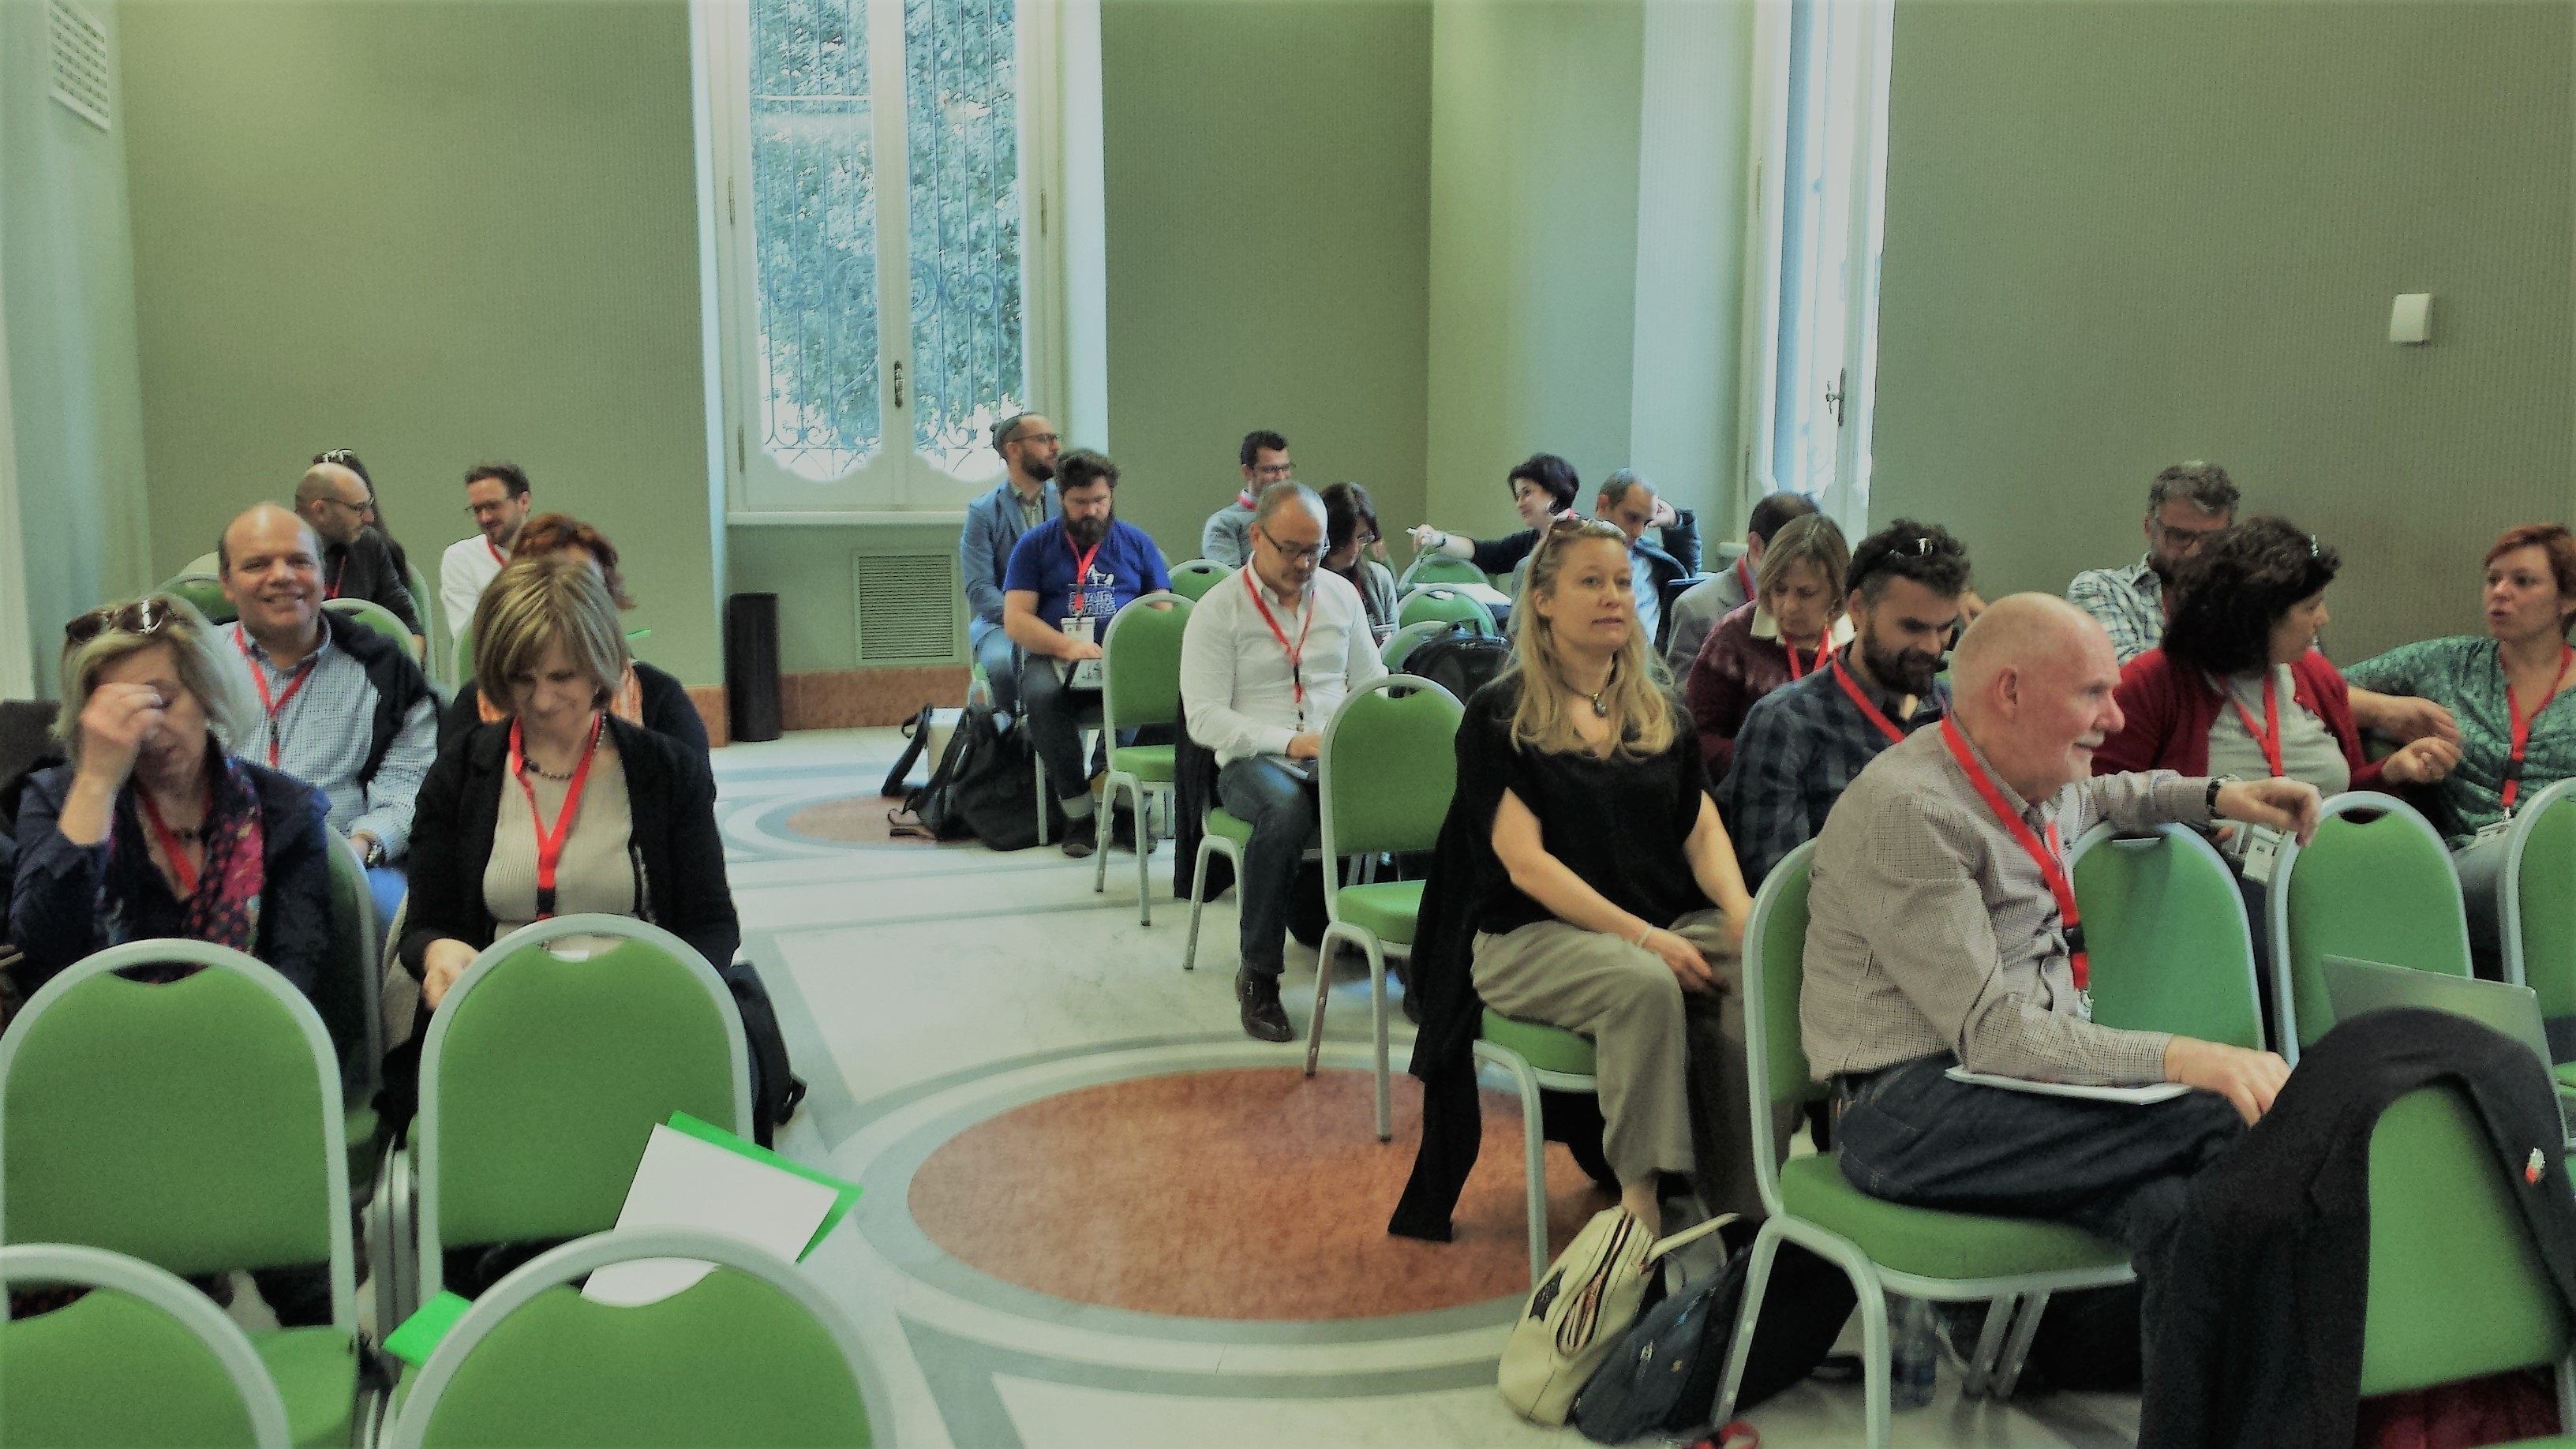 The 6th Internal Meeting has been held in Roma, IT